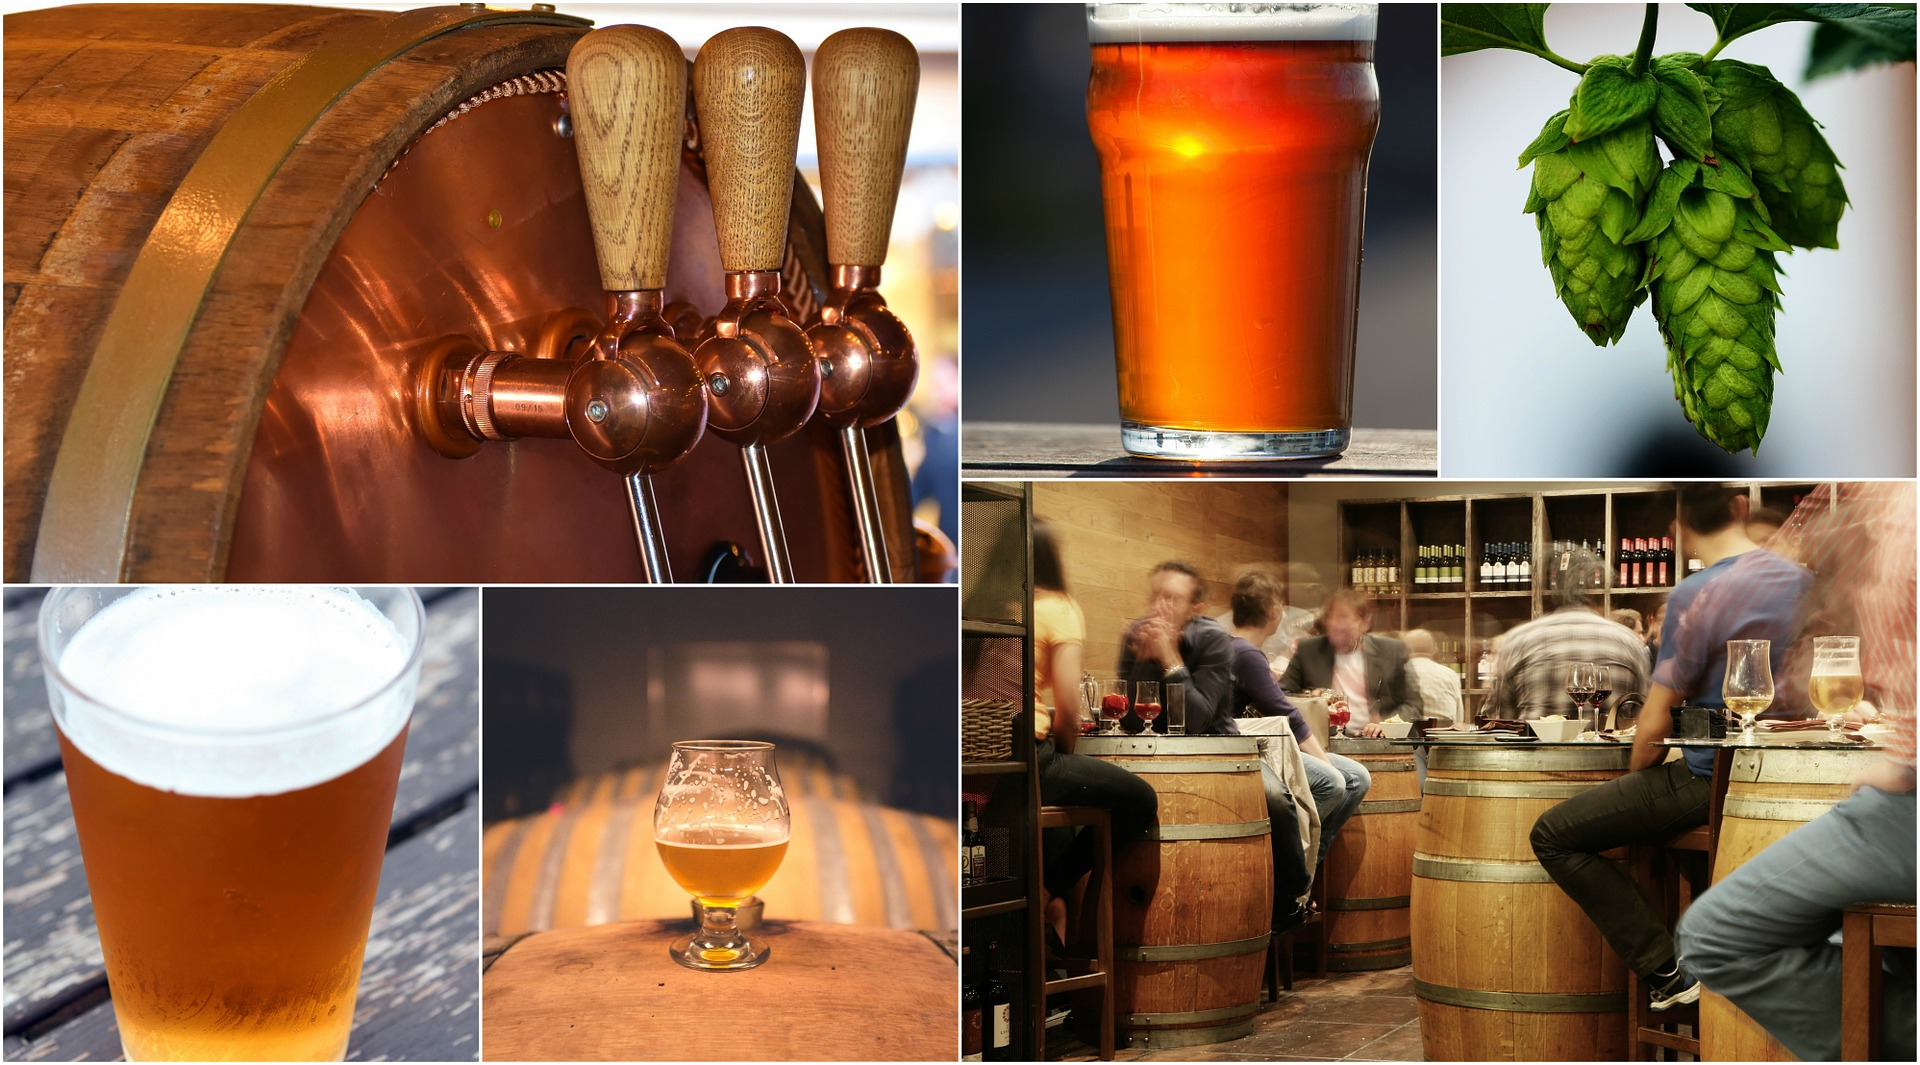 A collage of pictures that show how craft beer is made and enjoyed